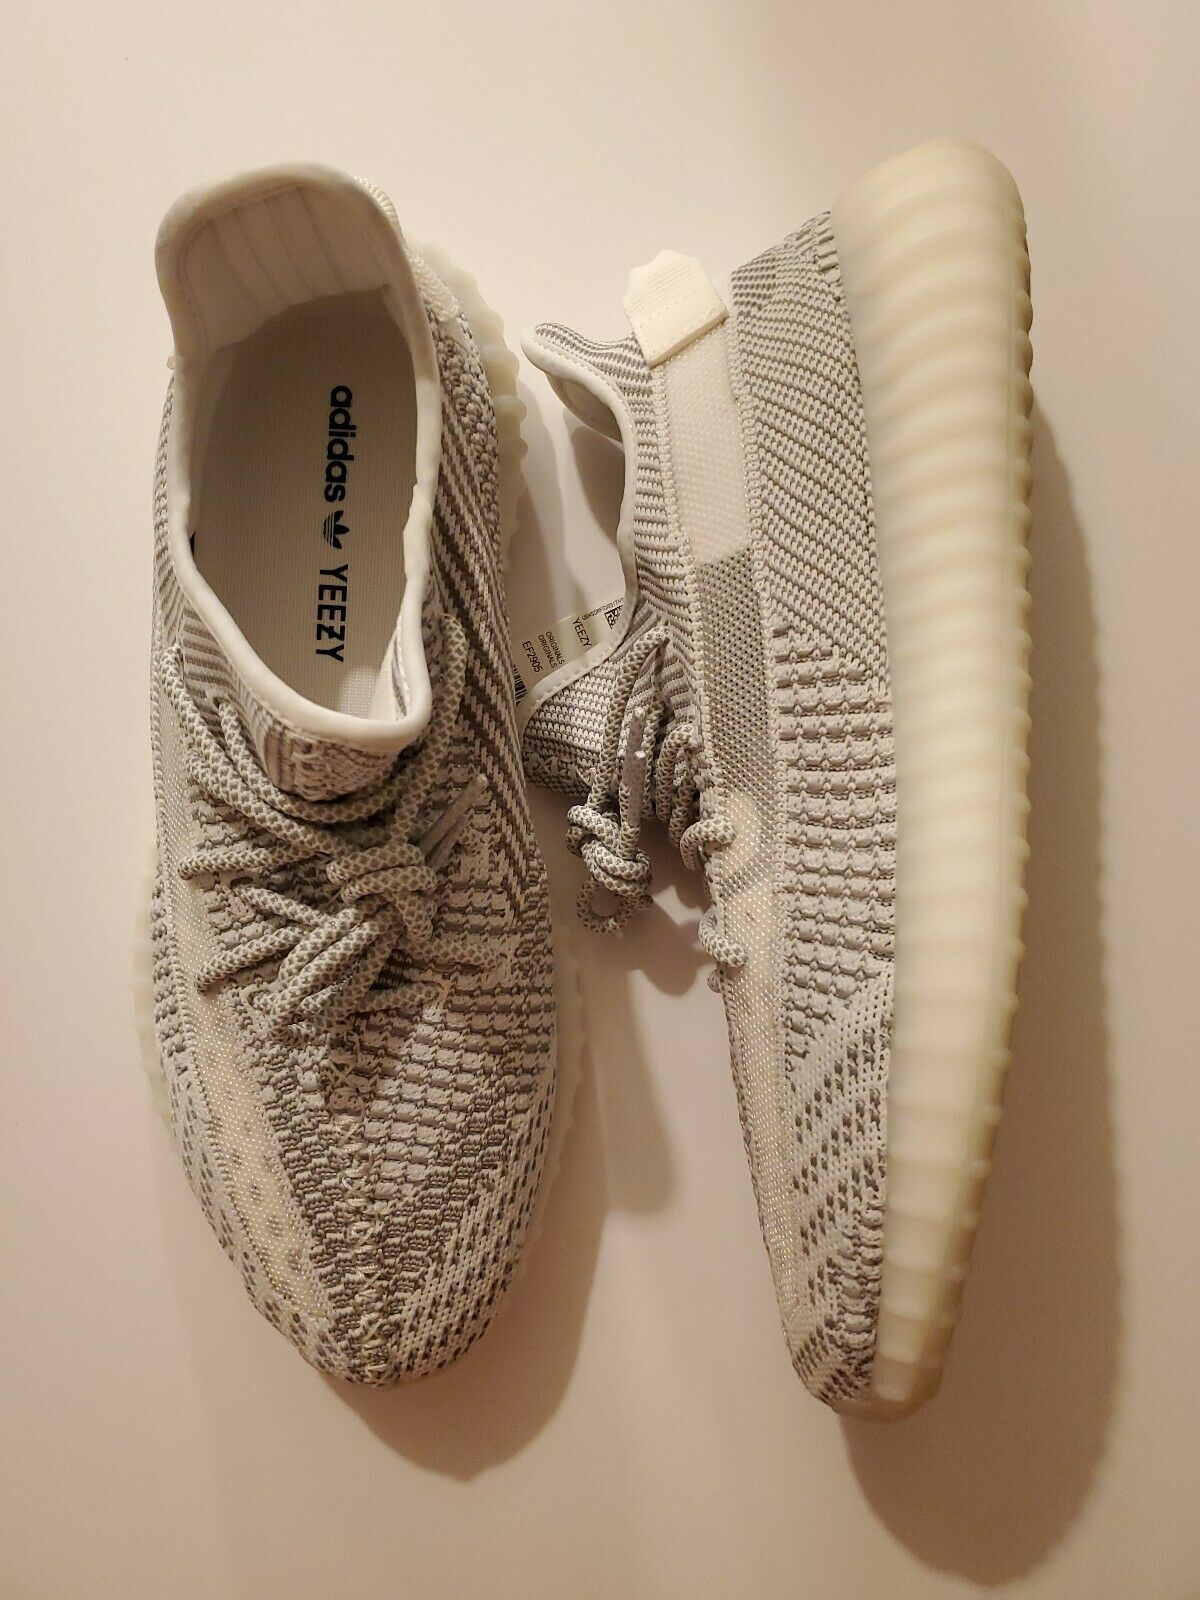 Adidas Yeezy Boost 350 V2 Static EF2905 size 12 non reflective 100% authentic image 6